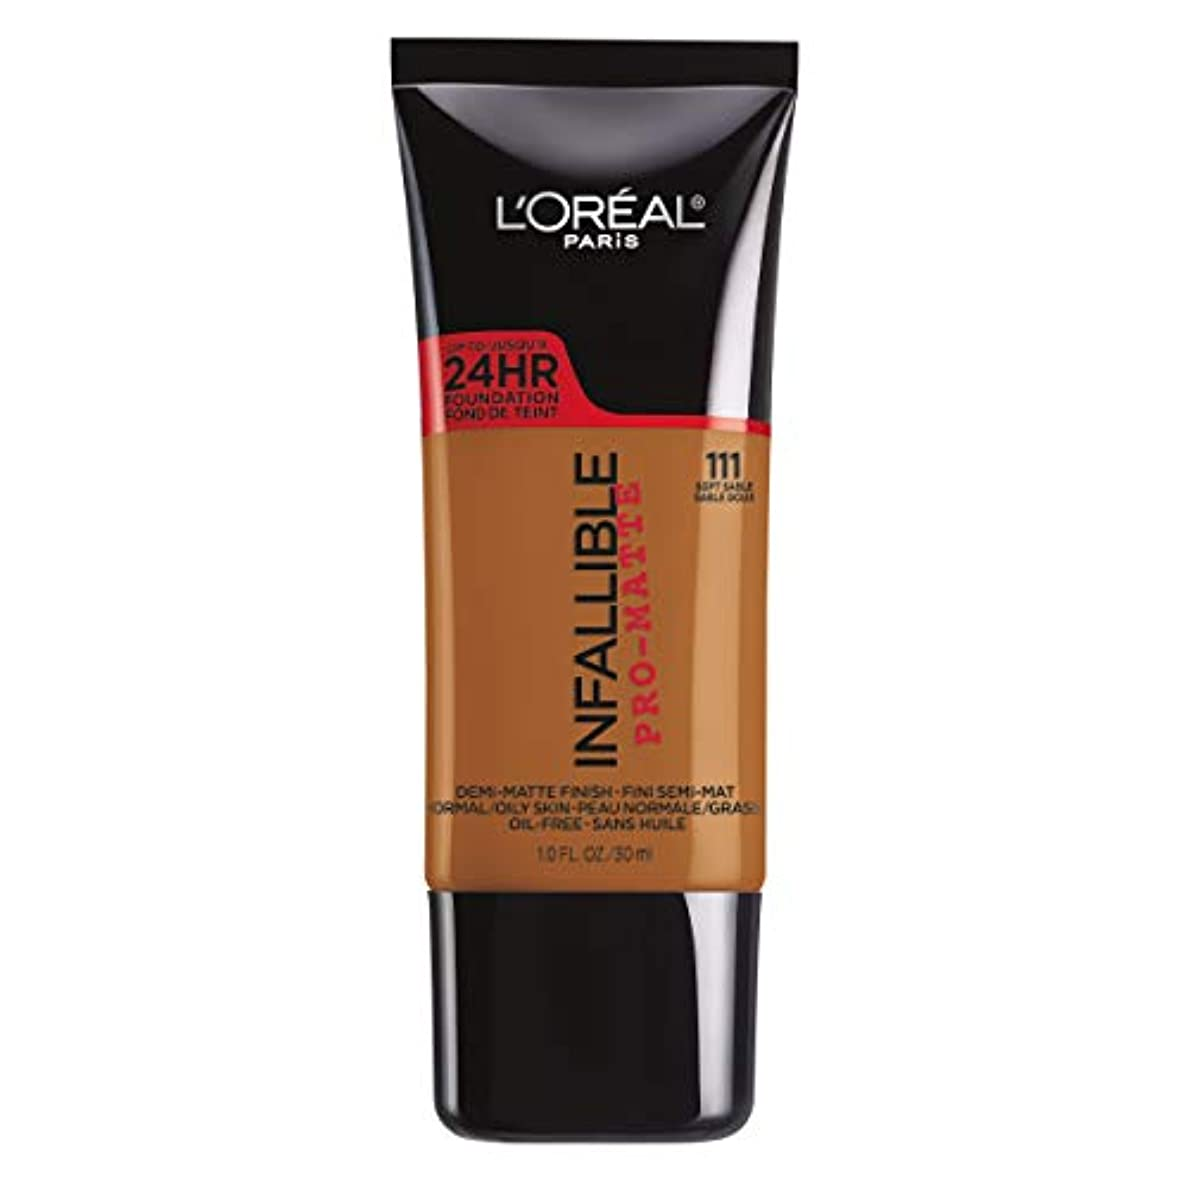 一方、スツール勇気L'Oreal Paris Infallible Pro-Matte Foundation Makeup, 111 Soft Sable, 1 fl. oz[並行輸入品]